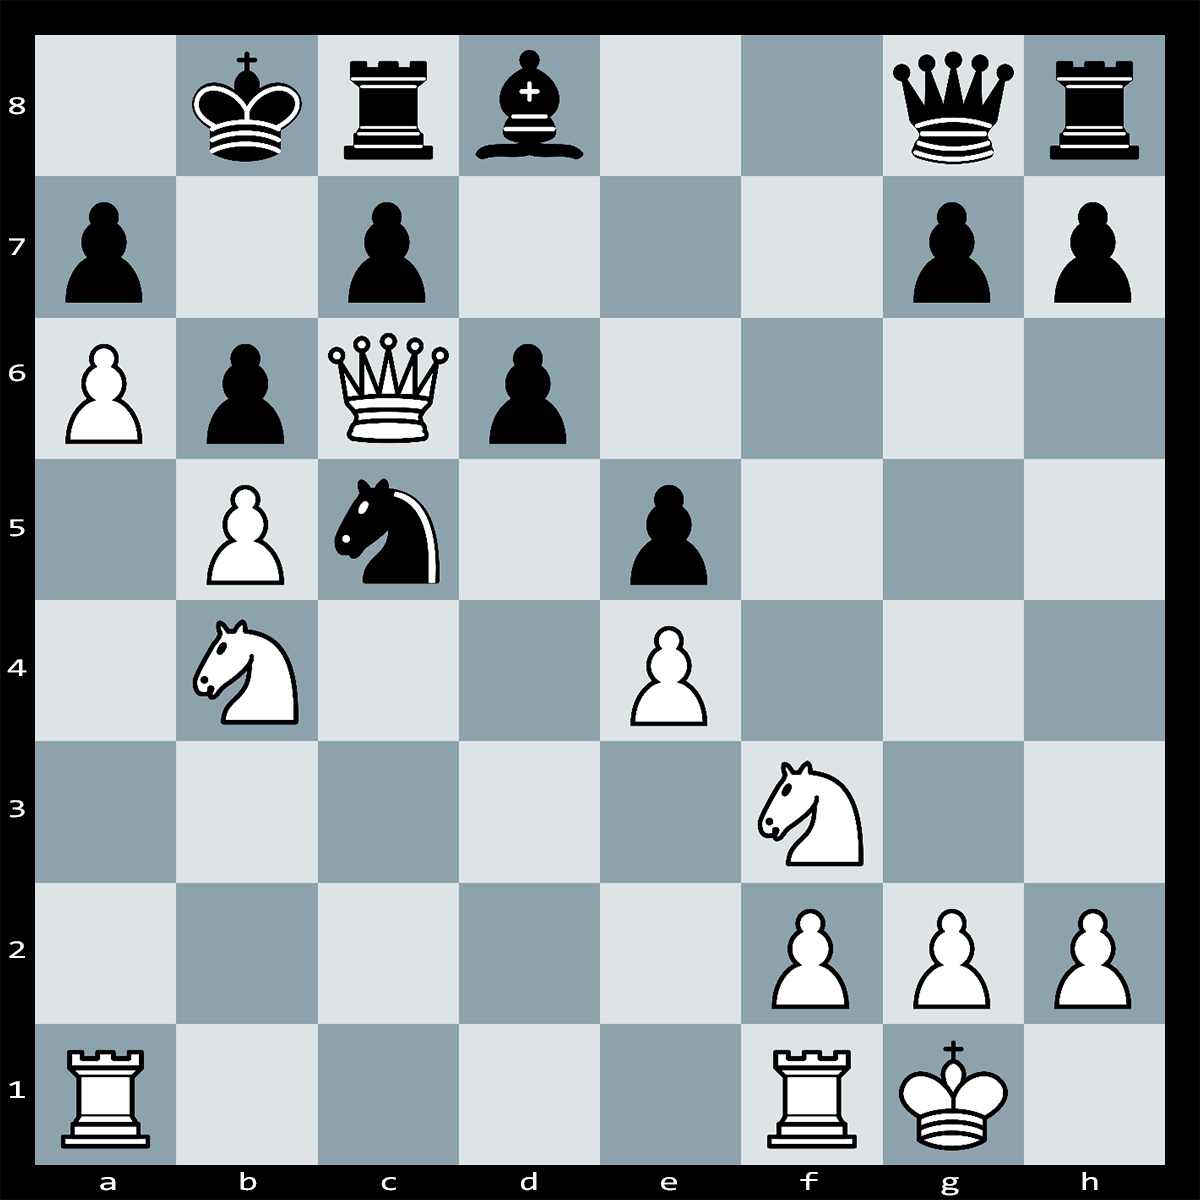 Mate in 4 Moves, White to Play | Chess Puzzle #186